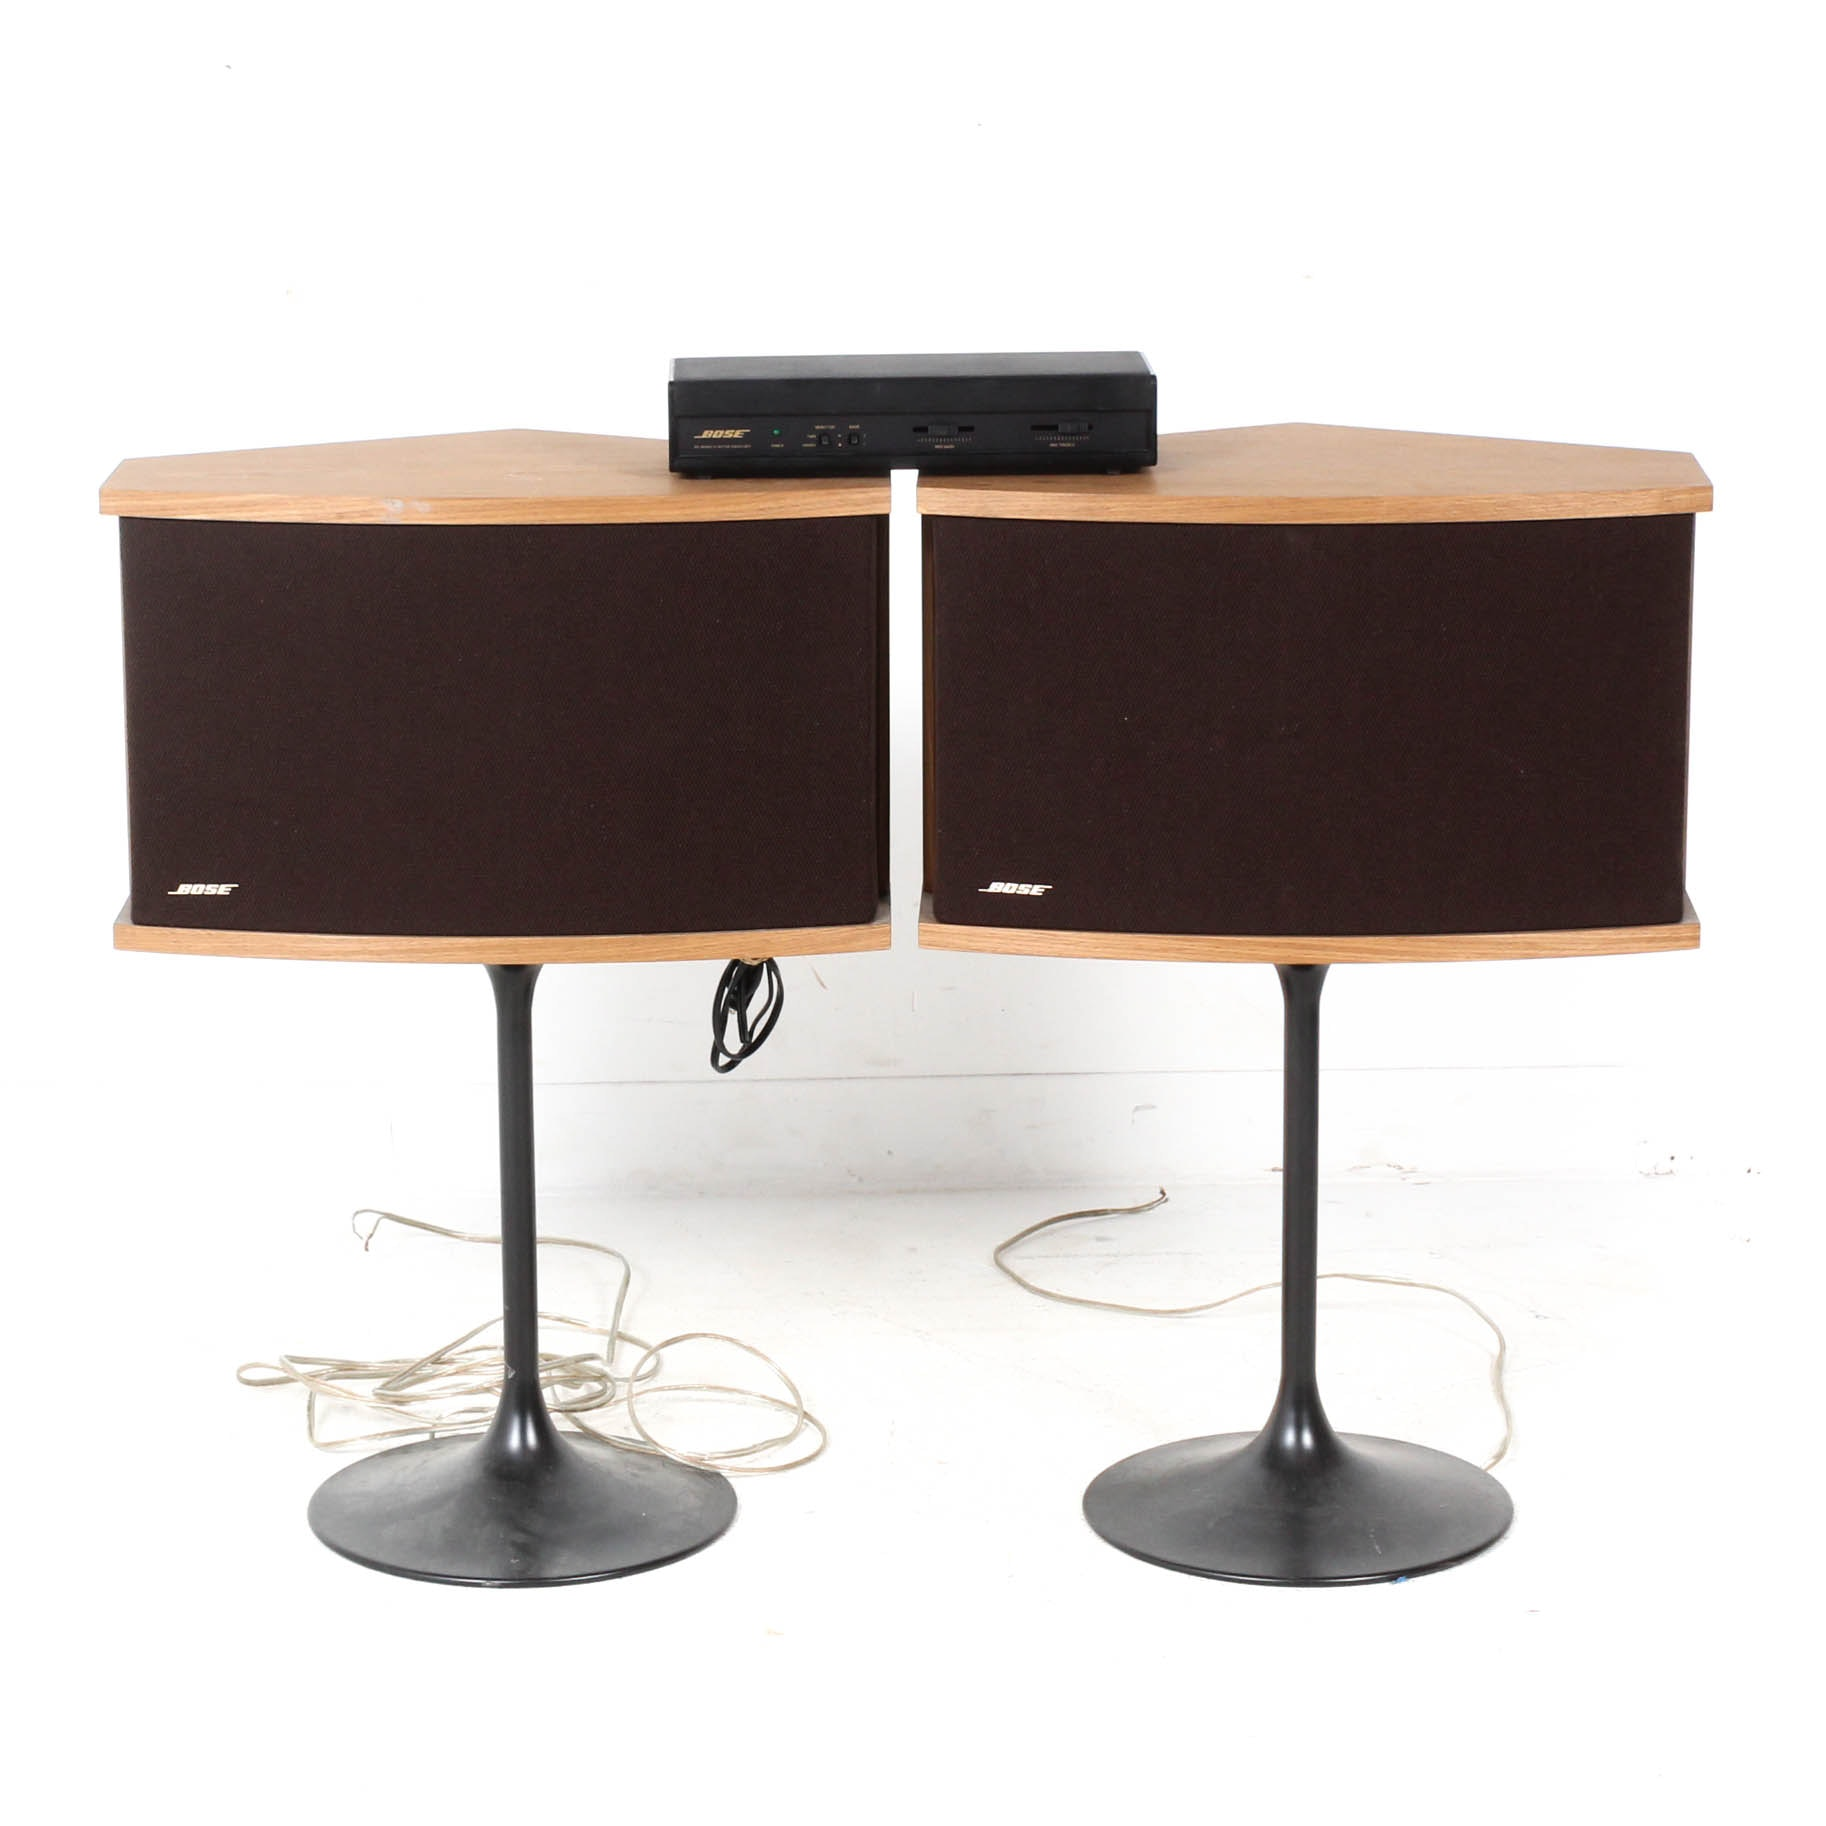 Bose 901 Series VI Speakers and Equalizer